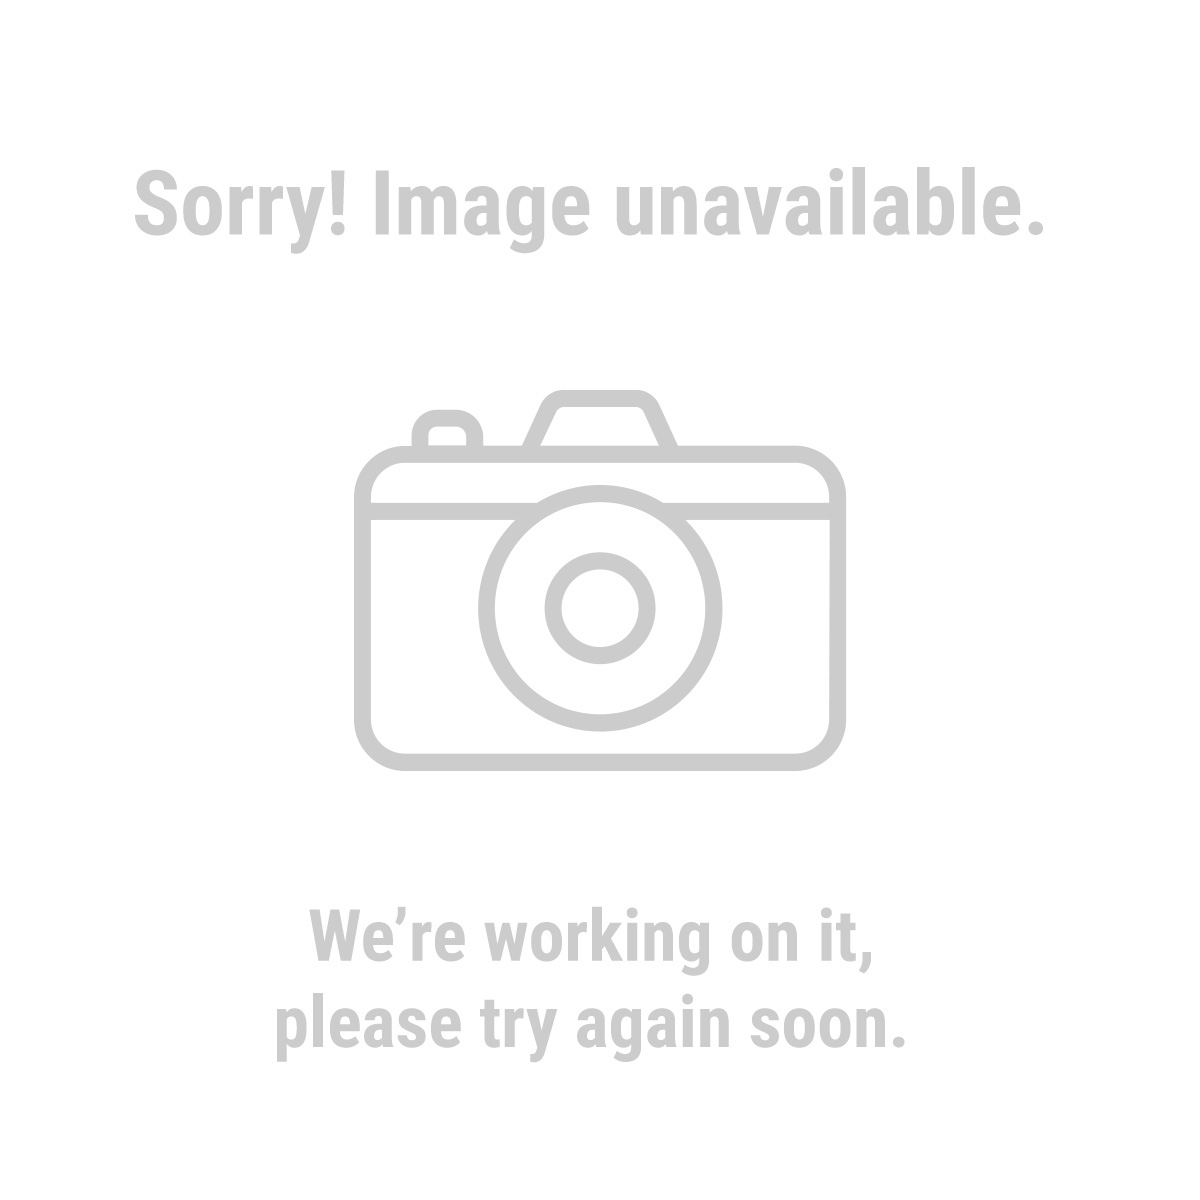 "Haul Master Automotive 97712 5/16"" x 20 Ft. Trucker's Chain"